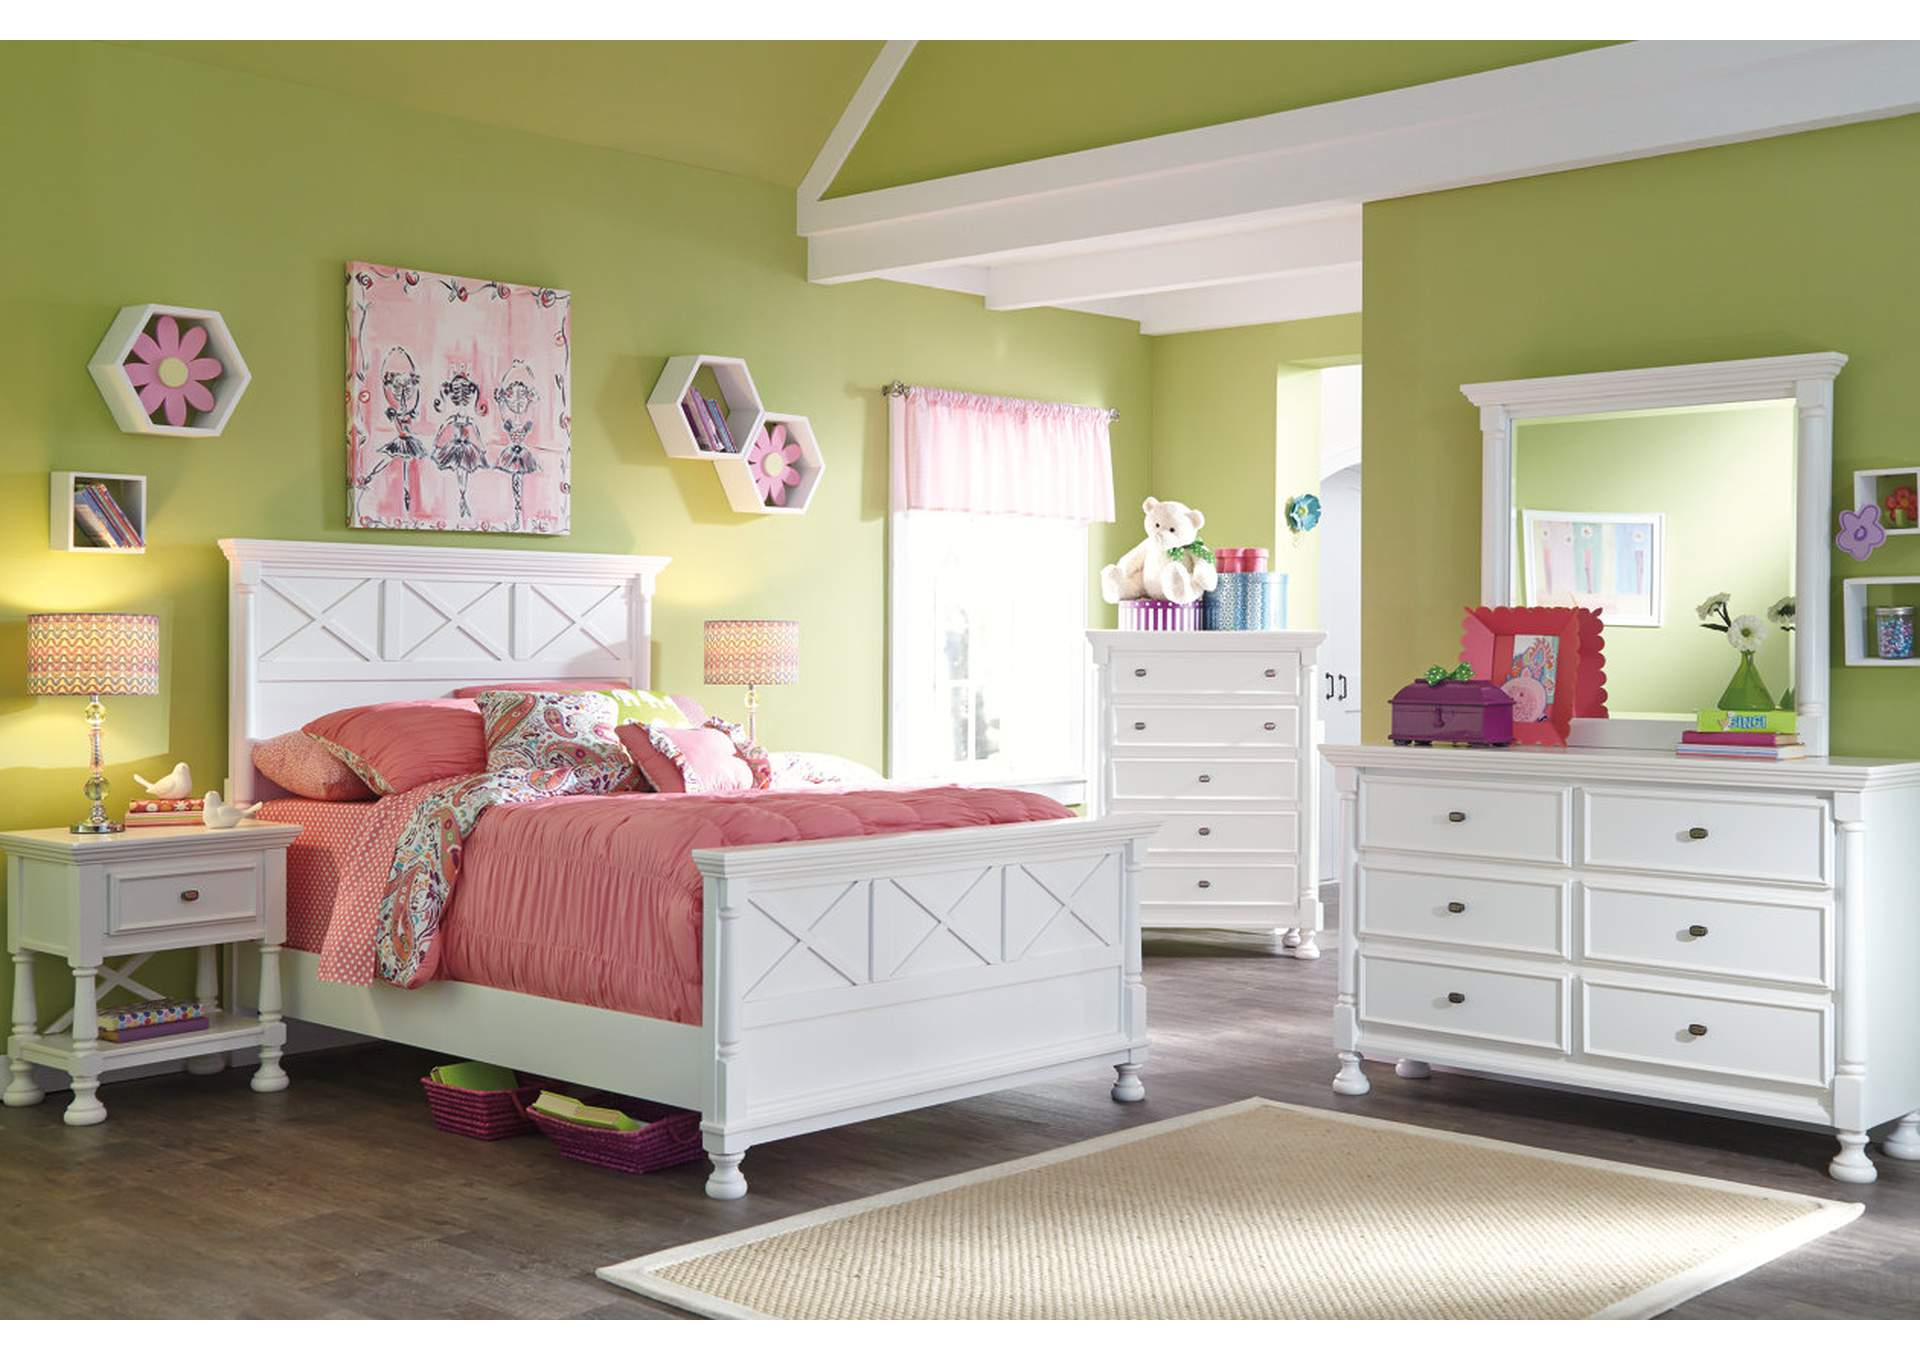 Kaslyn Queen Panel Bed w/Dresser, Mirror, Chest & Nightstand,Signature Design By Ashley